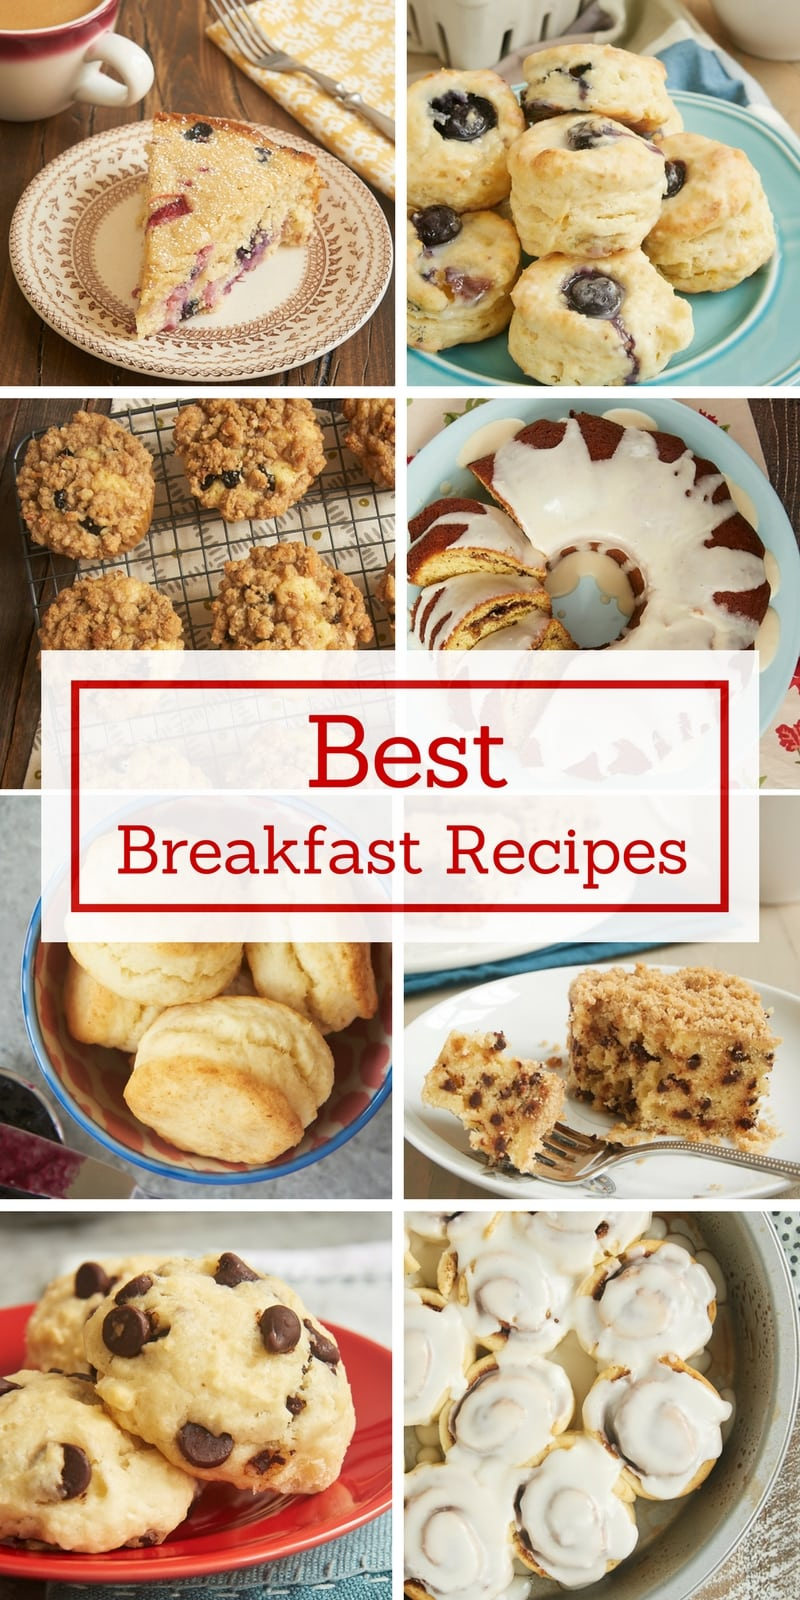 Make breakfast and brunch a little sweeter with some of Bake or Break's best muffins, coffee cakes, biscuits, and more!